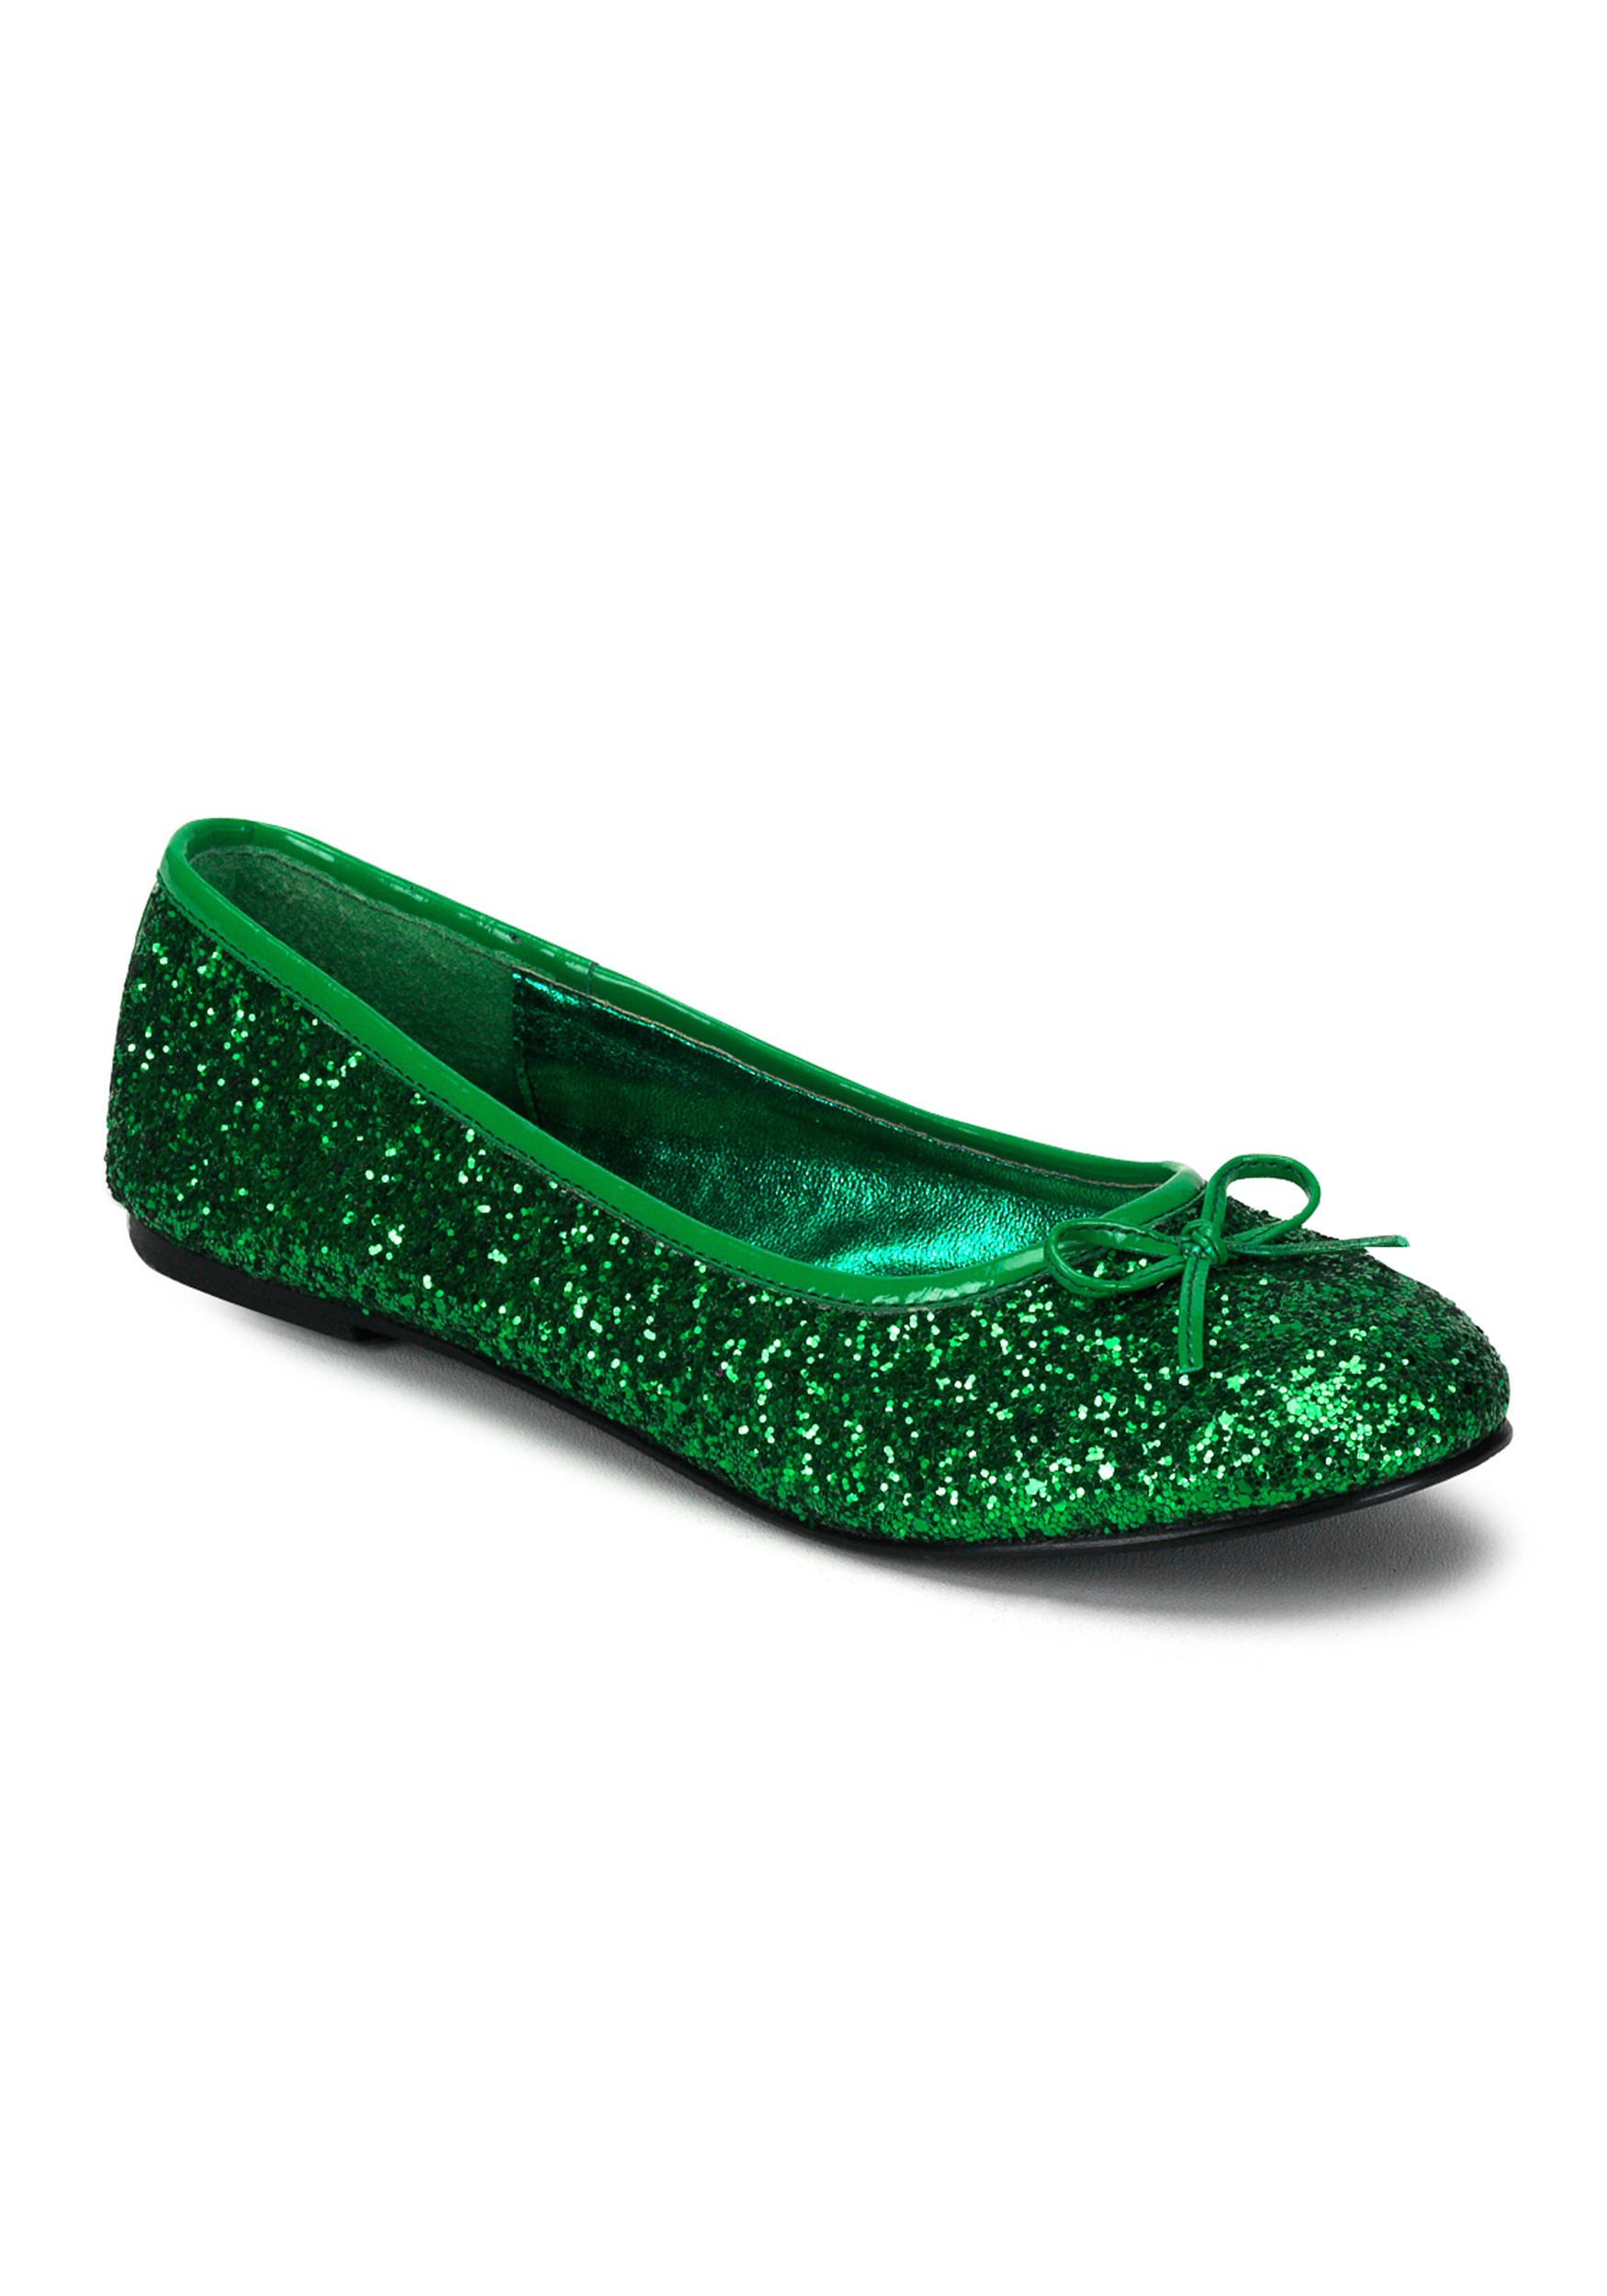 Adult Kelly Green Glitter Flats